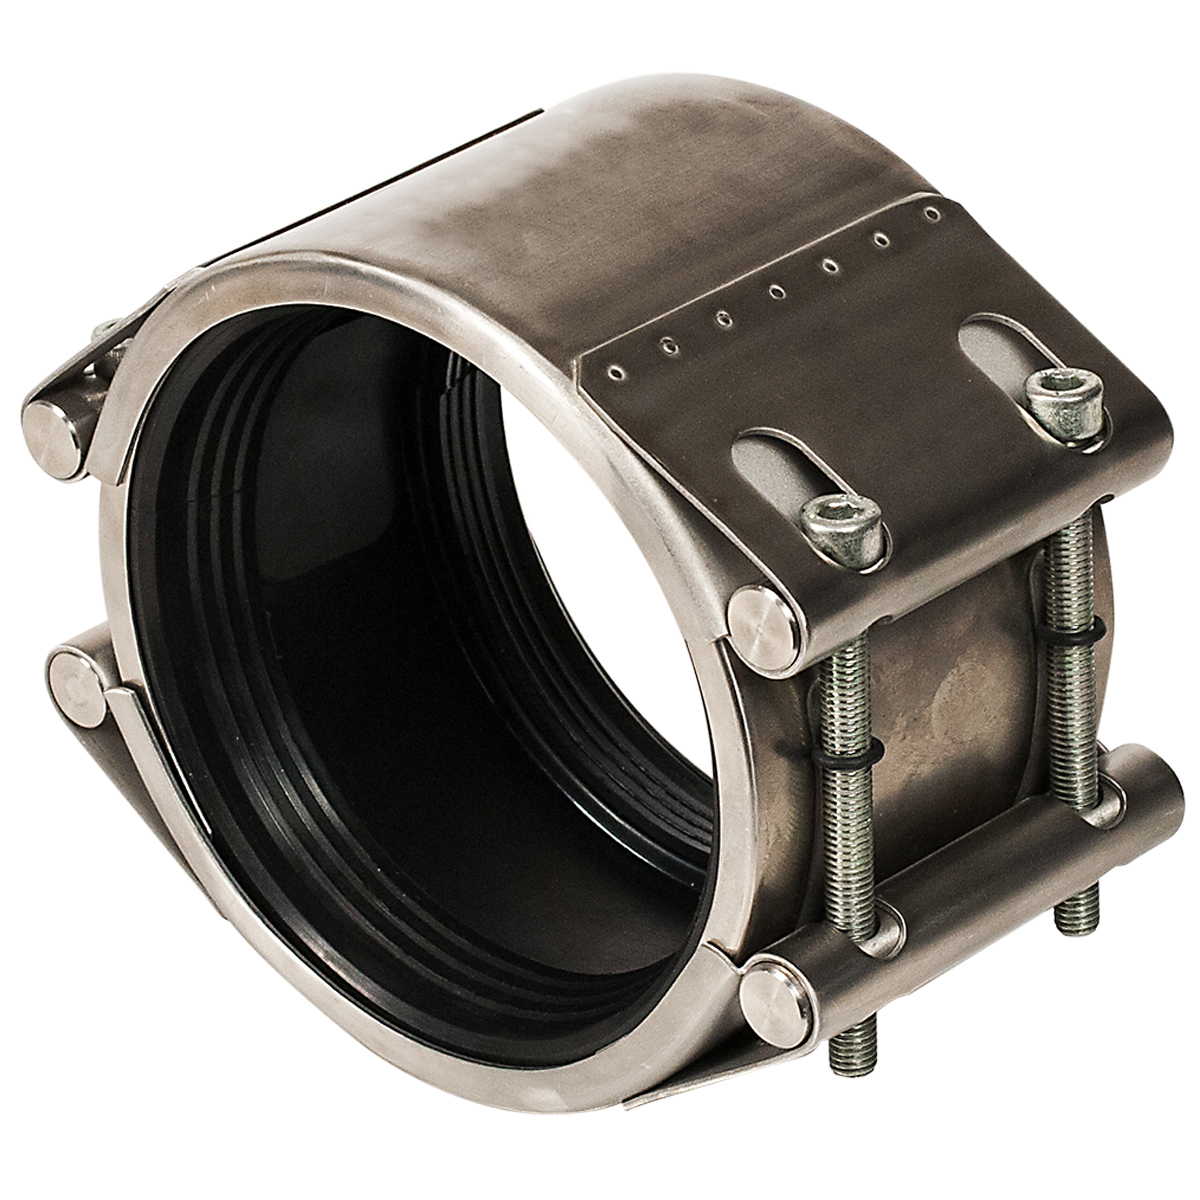 ARMOR SEAL - Stainless steel pipe repair clamp with hydrostatic gasket.Nominal Sizes4 - 24 inchesWorking PressureSee catalog pagePipe CompatibilitySteel, cast iron, ductile iron, asbestos cement, concrete,PVC, HDPE